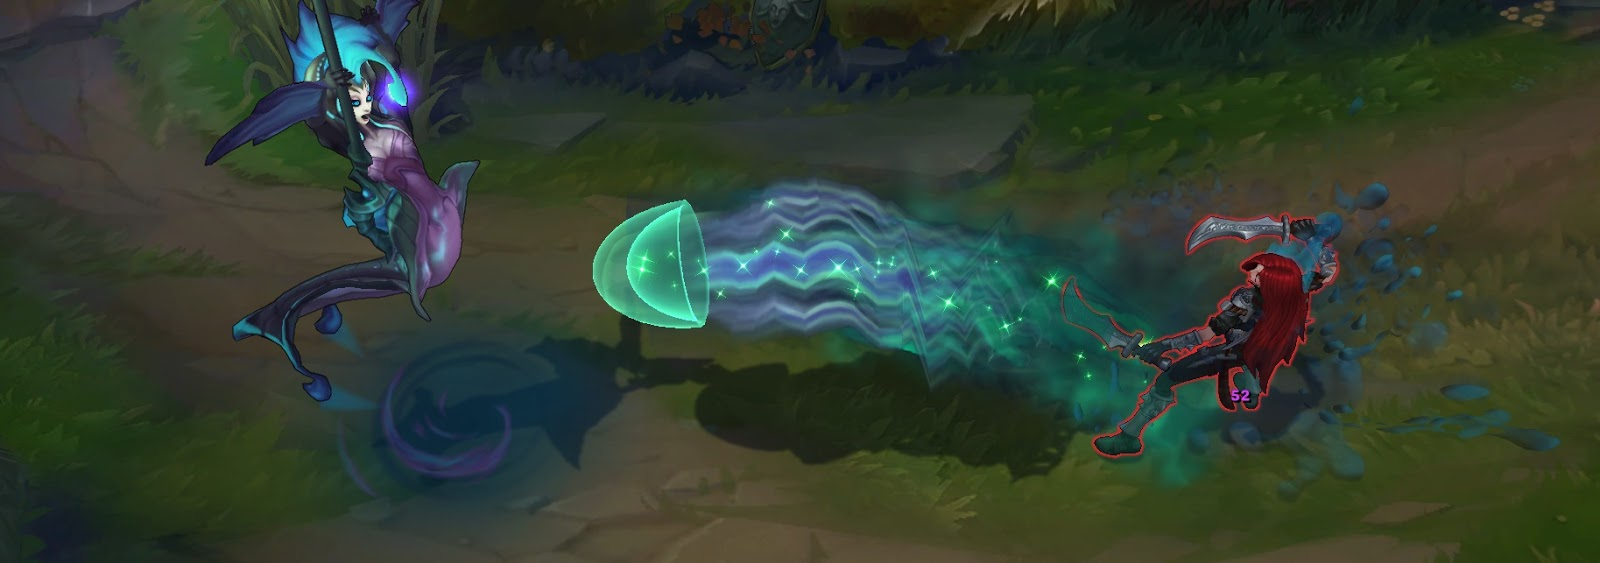 160616 08;08;36 Surrender at 20_ 6_14 PBE Update_ Soulstealer 027